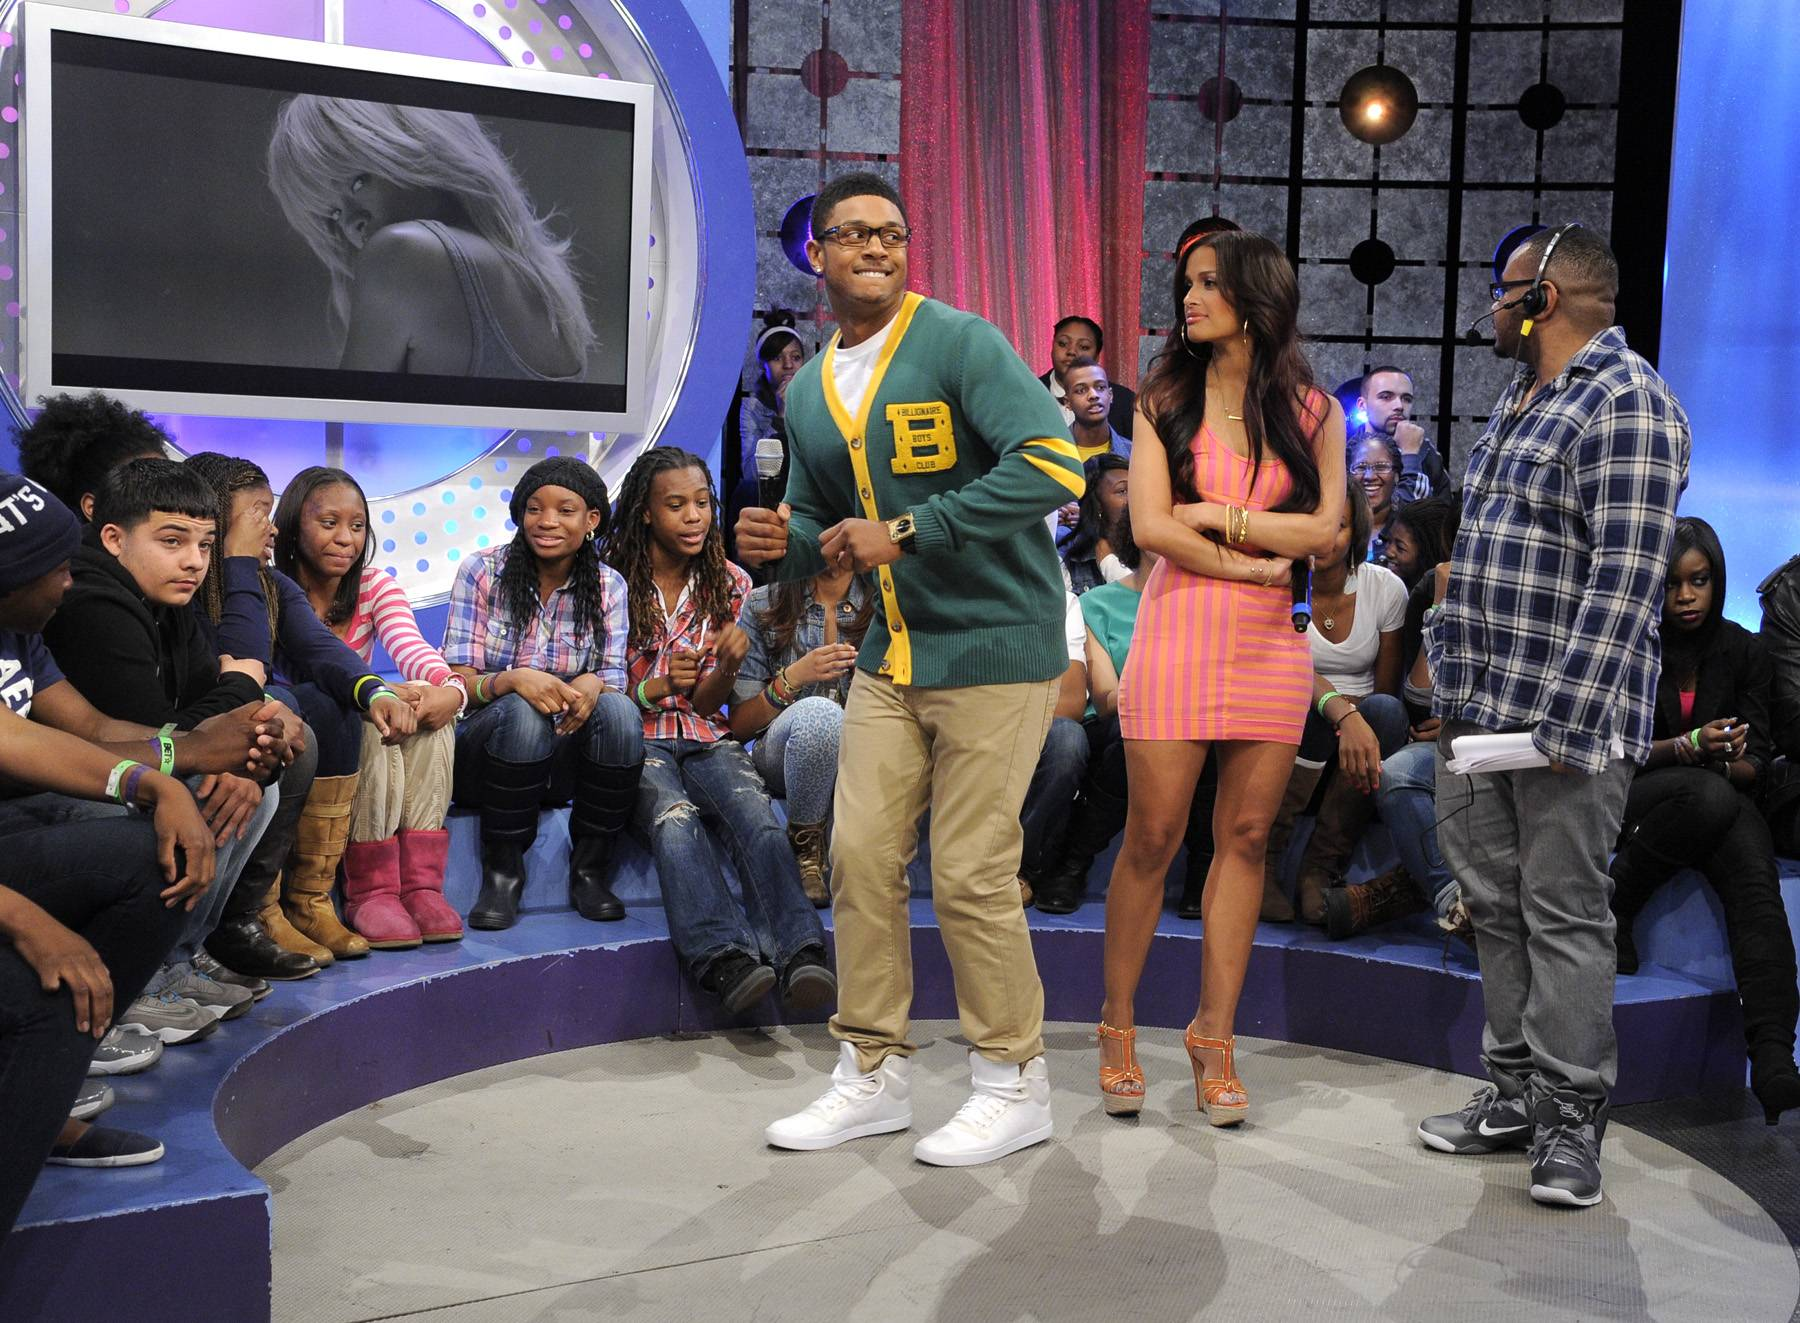 In Trouble - Pooch Hall clowns around during commercial break at 106 & Park, April 12, 2012. (Photo: John Ricard / BET)